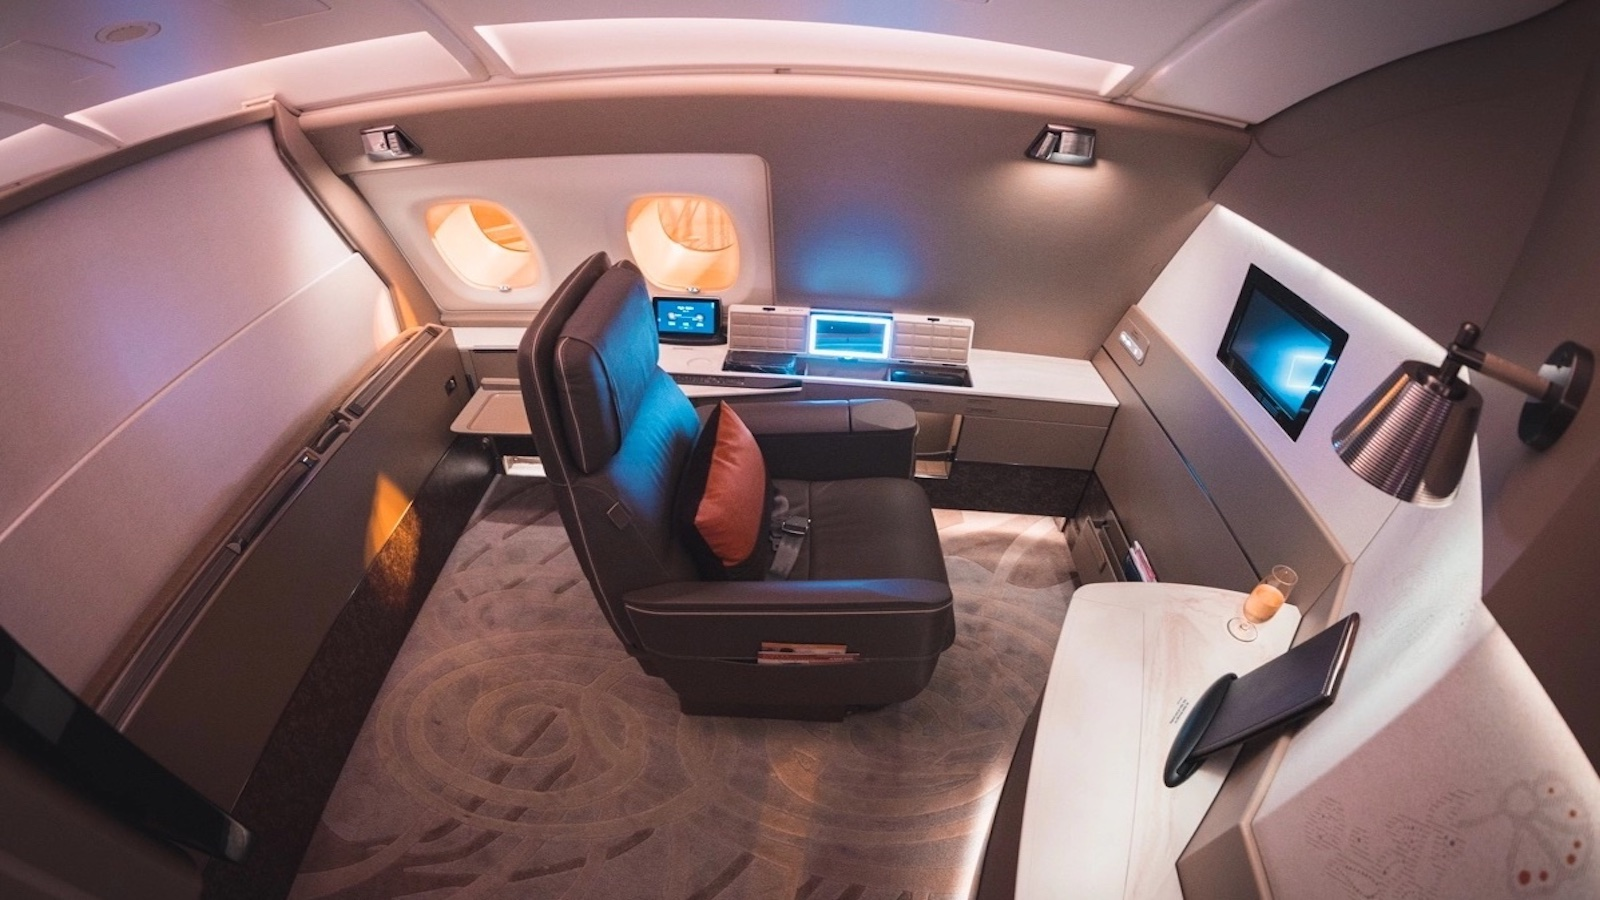 Follow some of these tips and you can find yourself relaxing in a Singapore Airlines First Class Suite